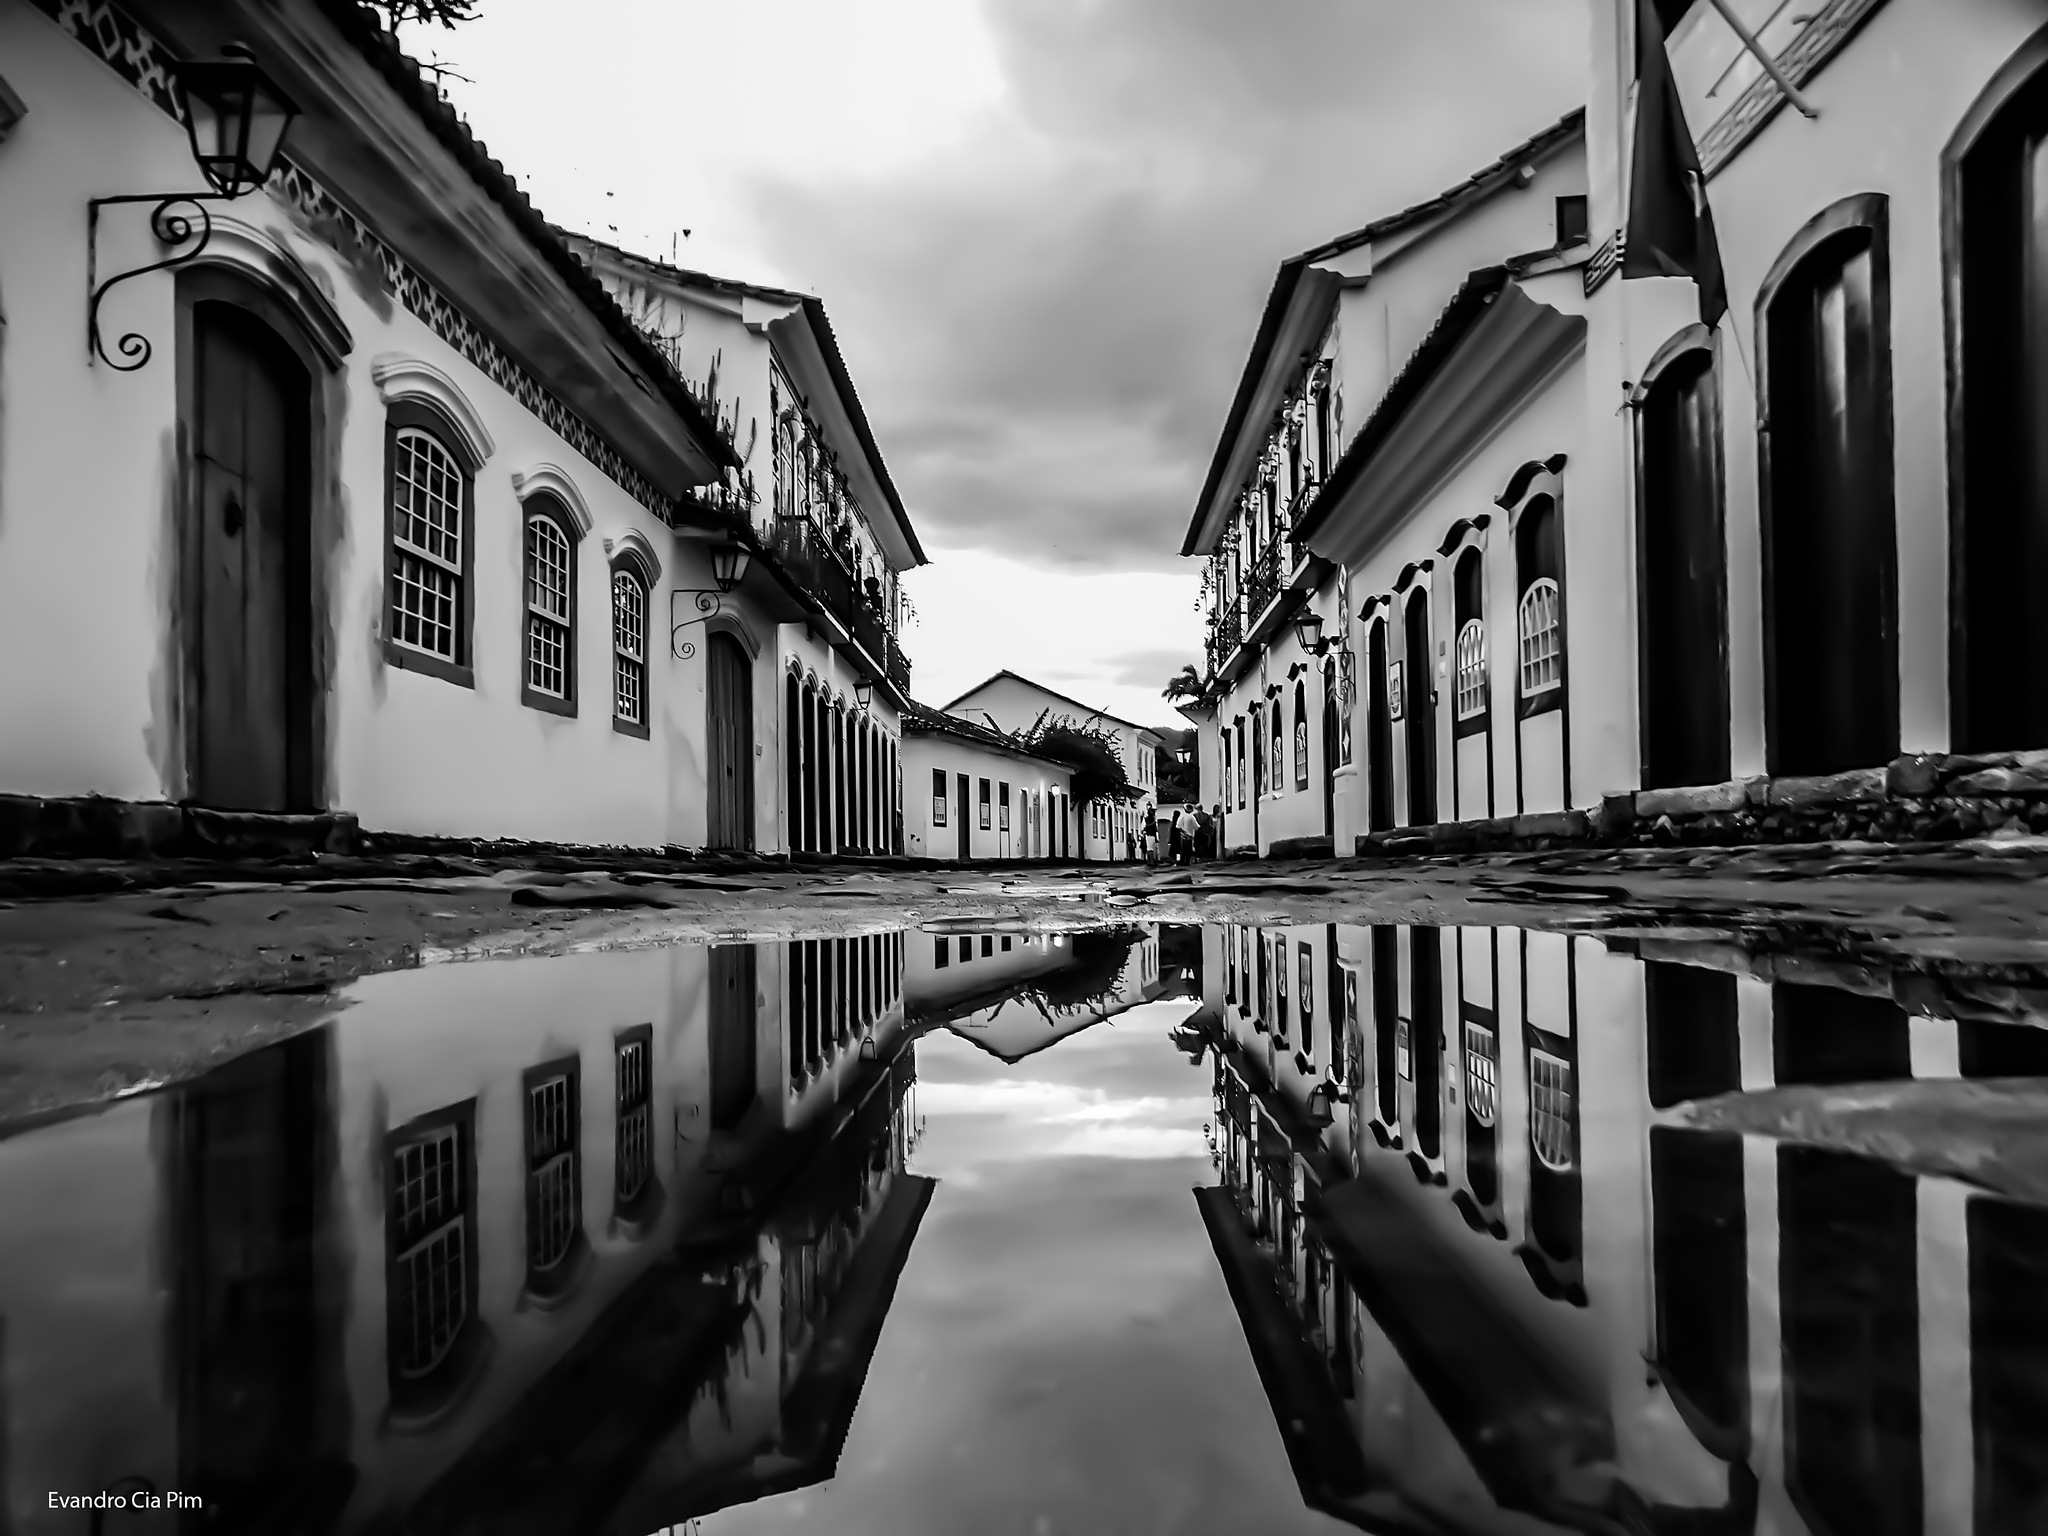 Untitled by evandro_cia